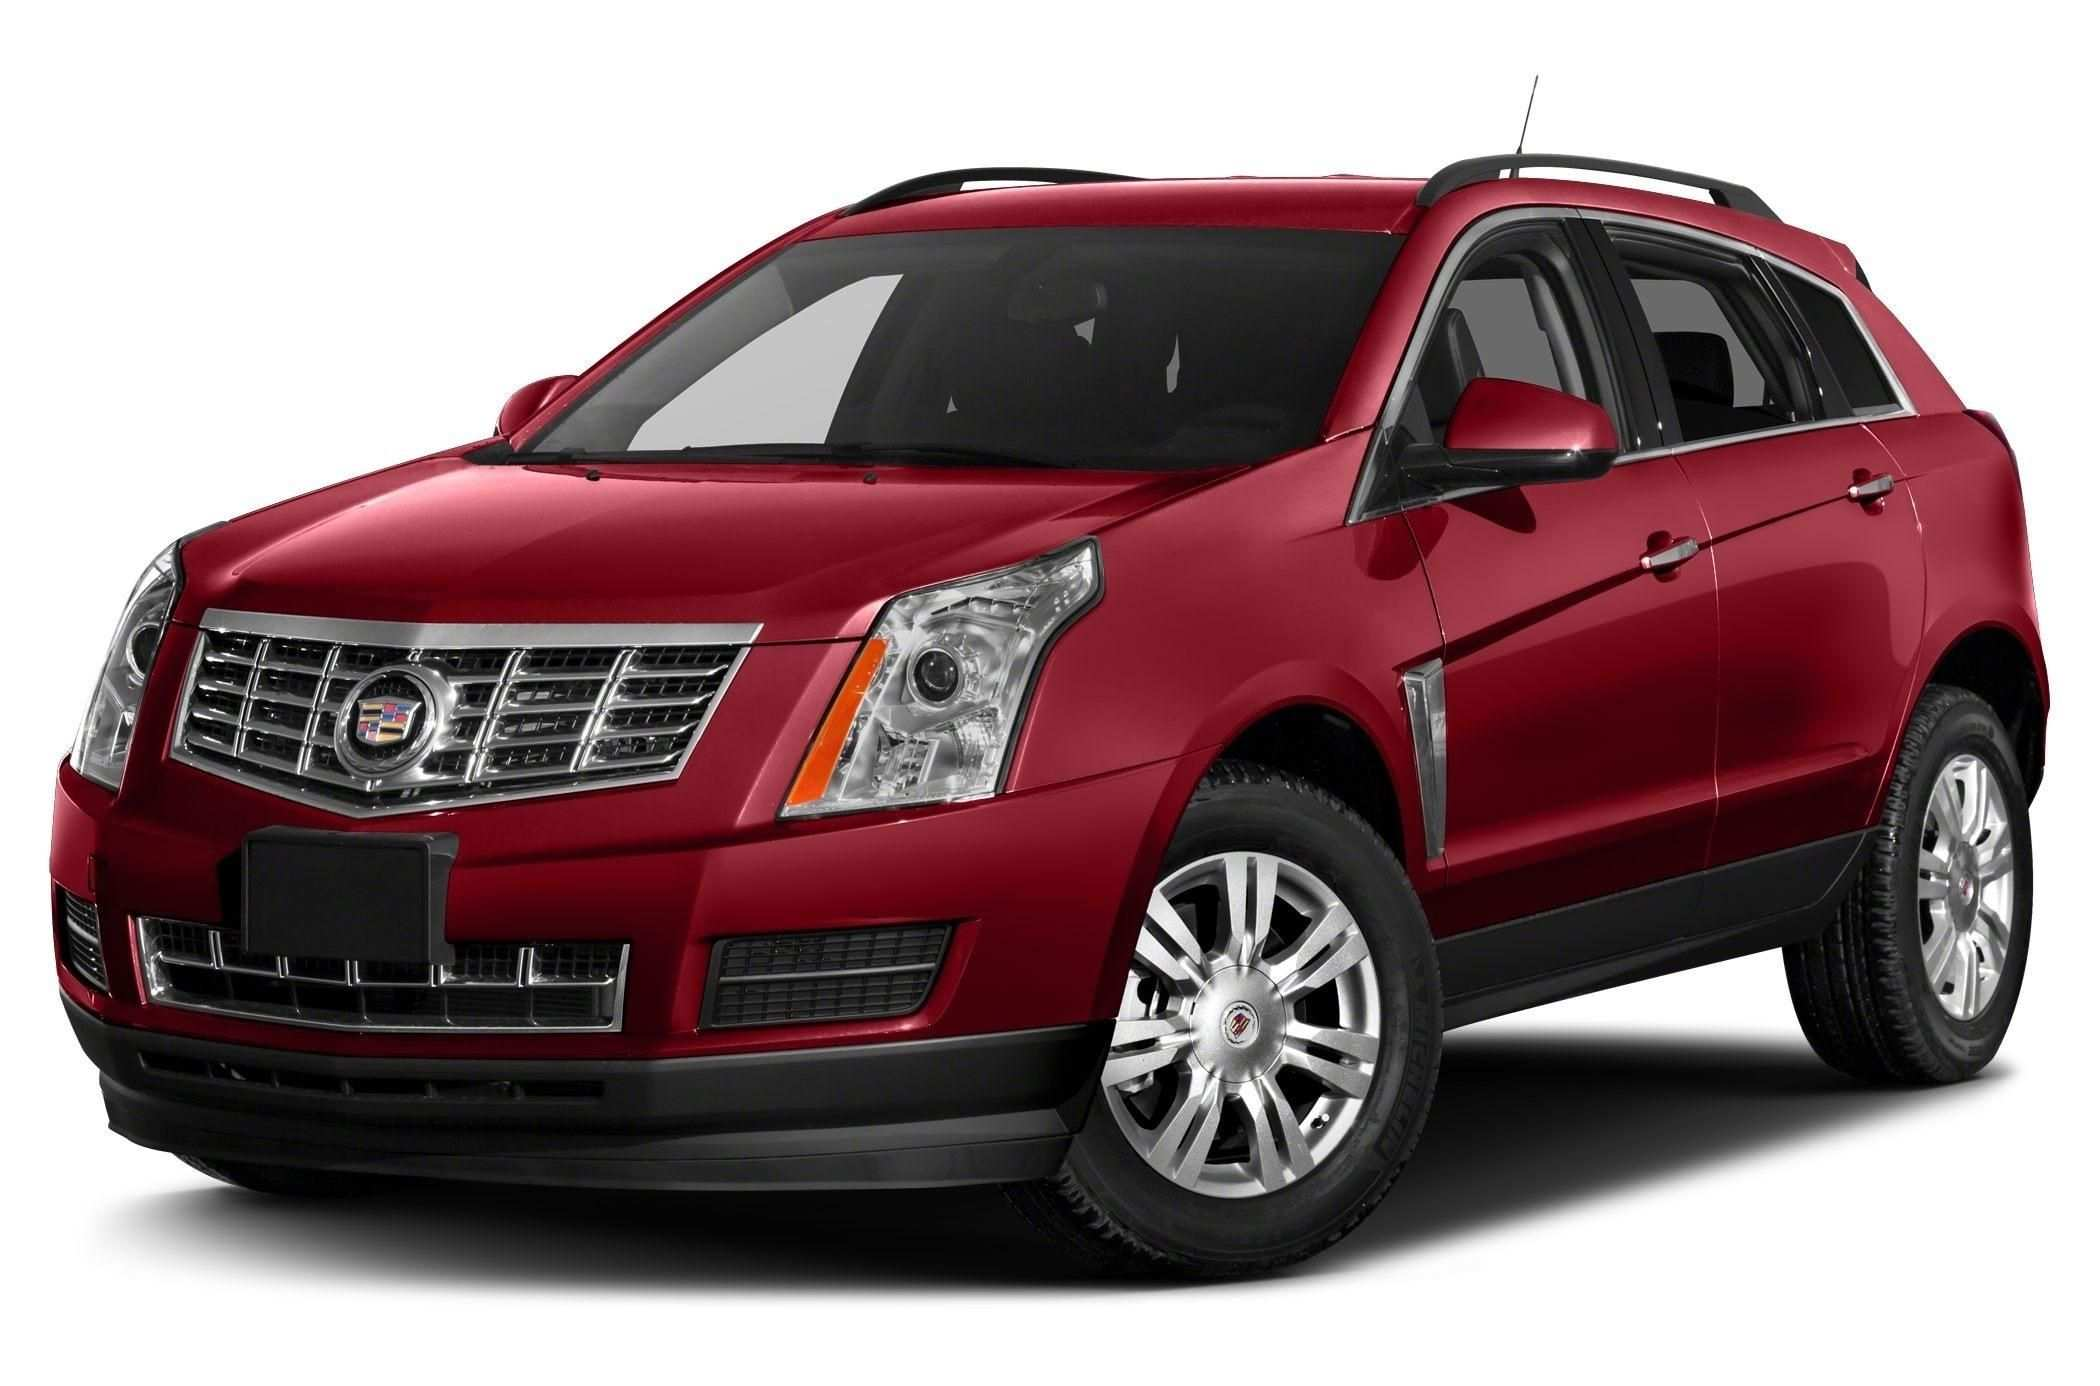 19 Best Review 2019 Cadillac Srxspy Photos Pricing by 2019 Cadillac Srxspy Photos